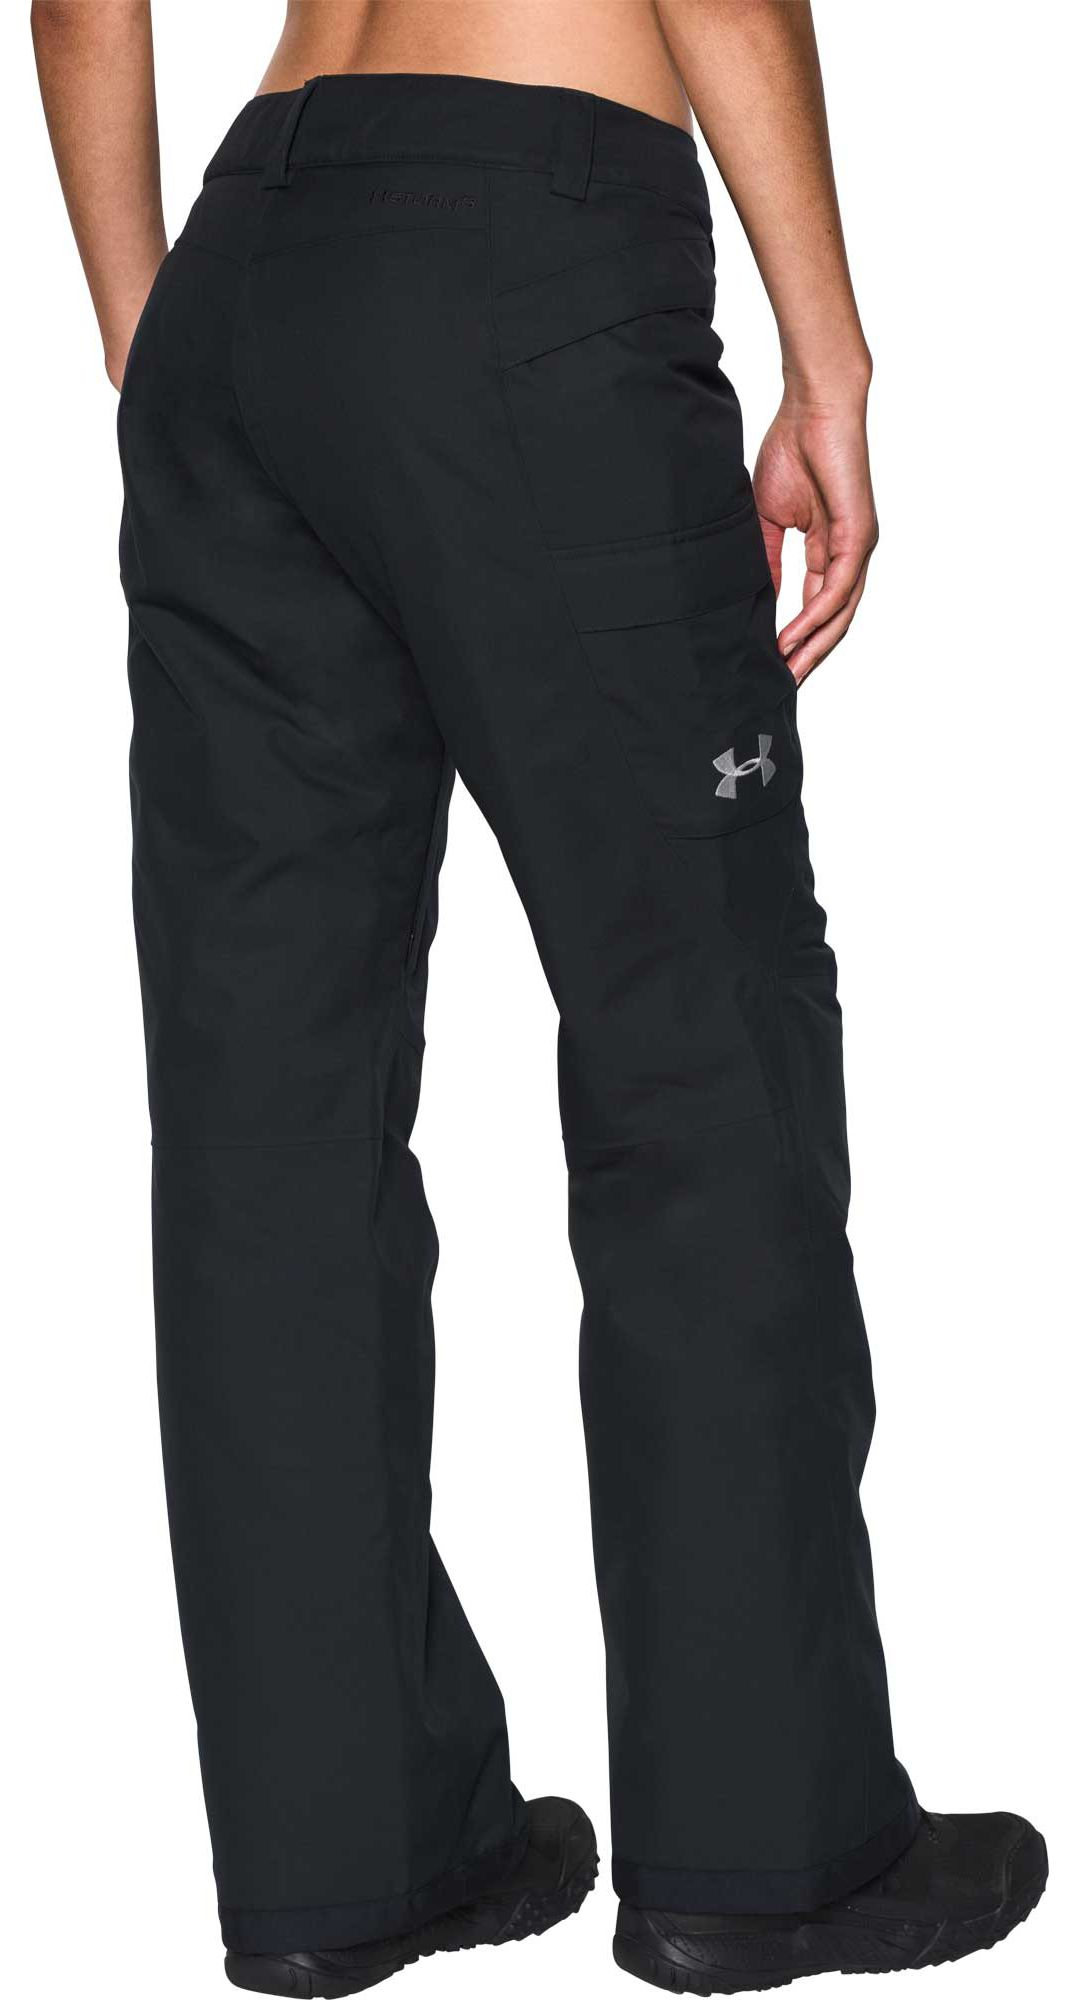 6d5ecd18b Under Armour Women's ColdGear Infrared Chutes Insulated Pants.  noImageFound. Previous. 1. 2